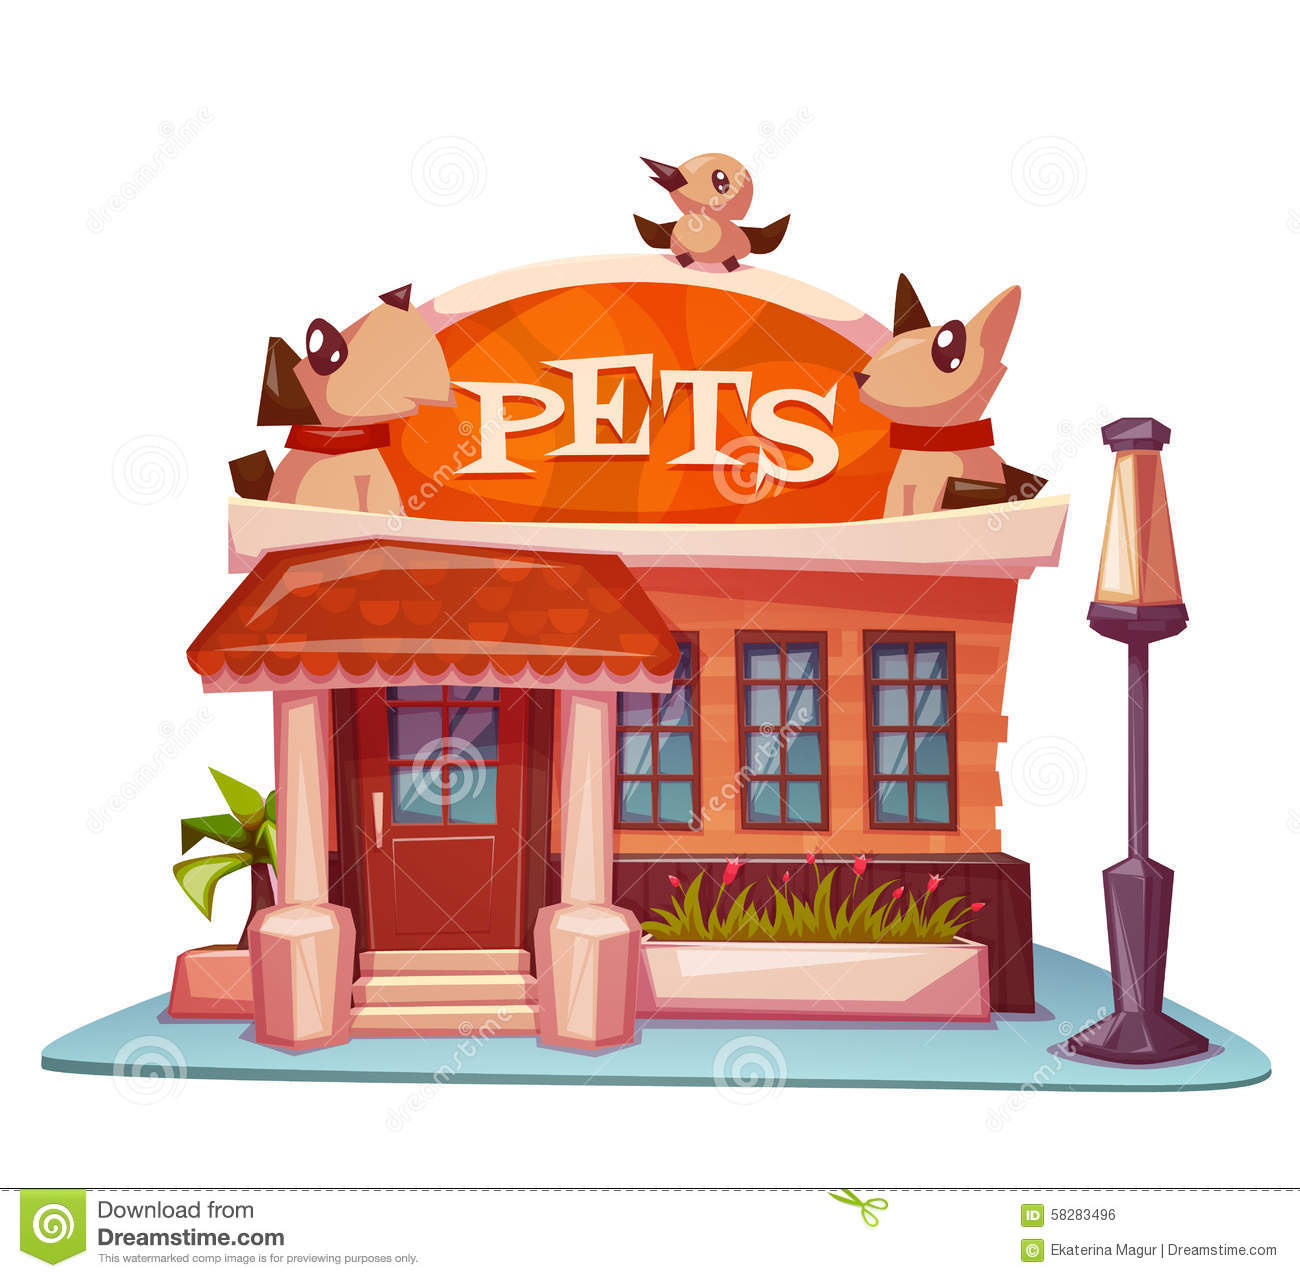 Animals building clipart clip art royalty free library Pet Store Animals Clipart - Clip Art Library clip art royalty free library